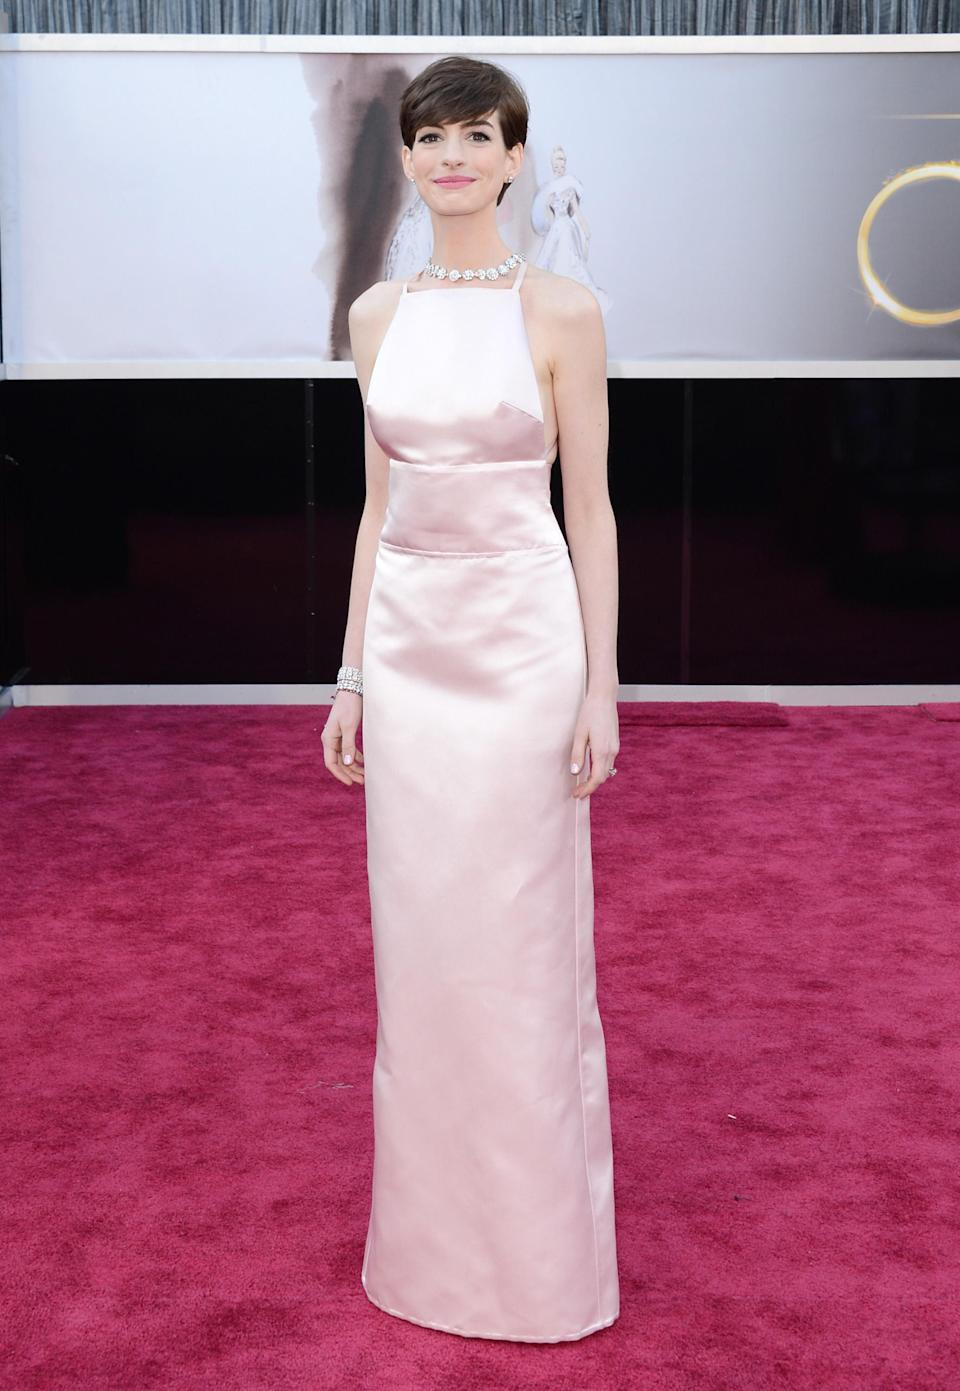 Hathaway hit headlines in 2013 when she wore this pale pink Prada dress to the Oscars – and not because of how beautifully simplistic it was. The American actress was supposed to be wearing a Valentino gown but switched to the Prada at the last moment because another actress was set to wear a very similar look. Can't say we mind: the Prada looked sensational on the petite star.